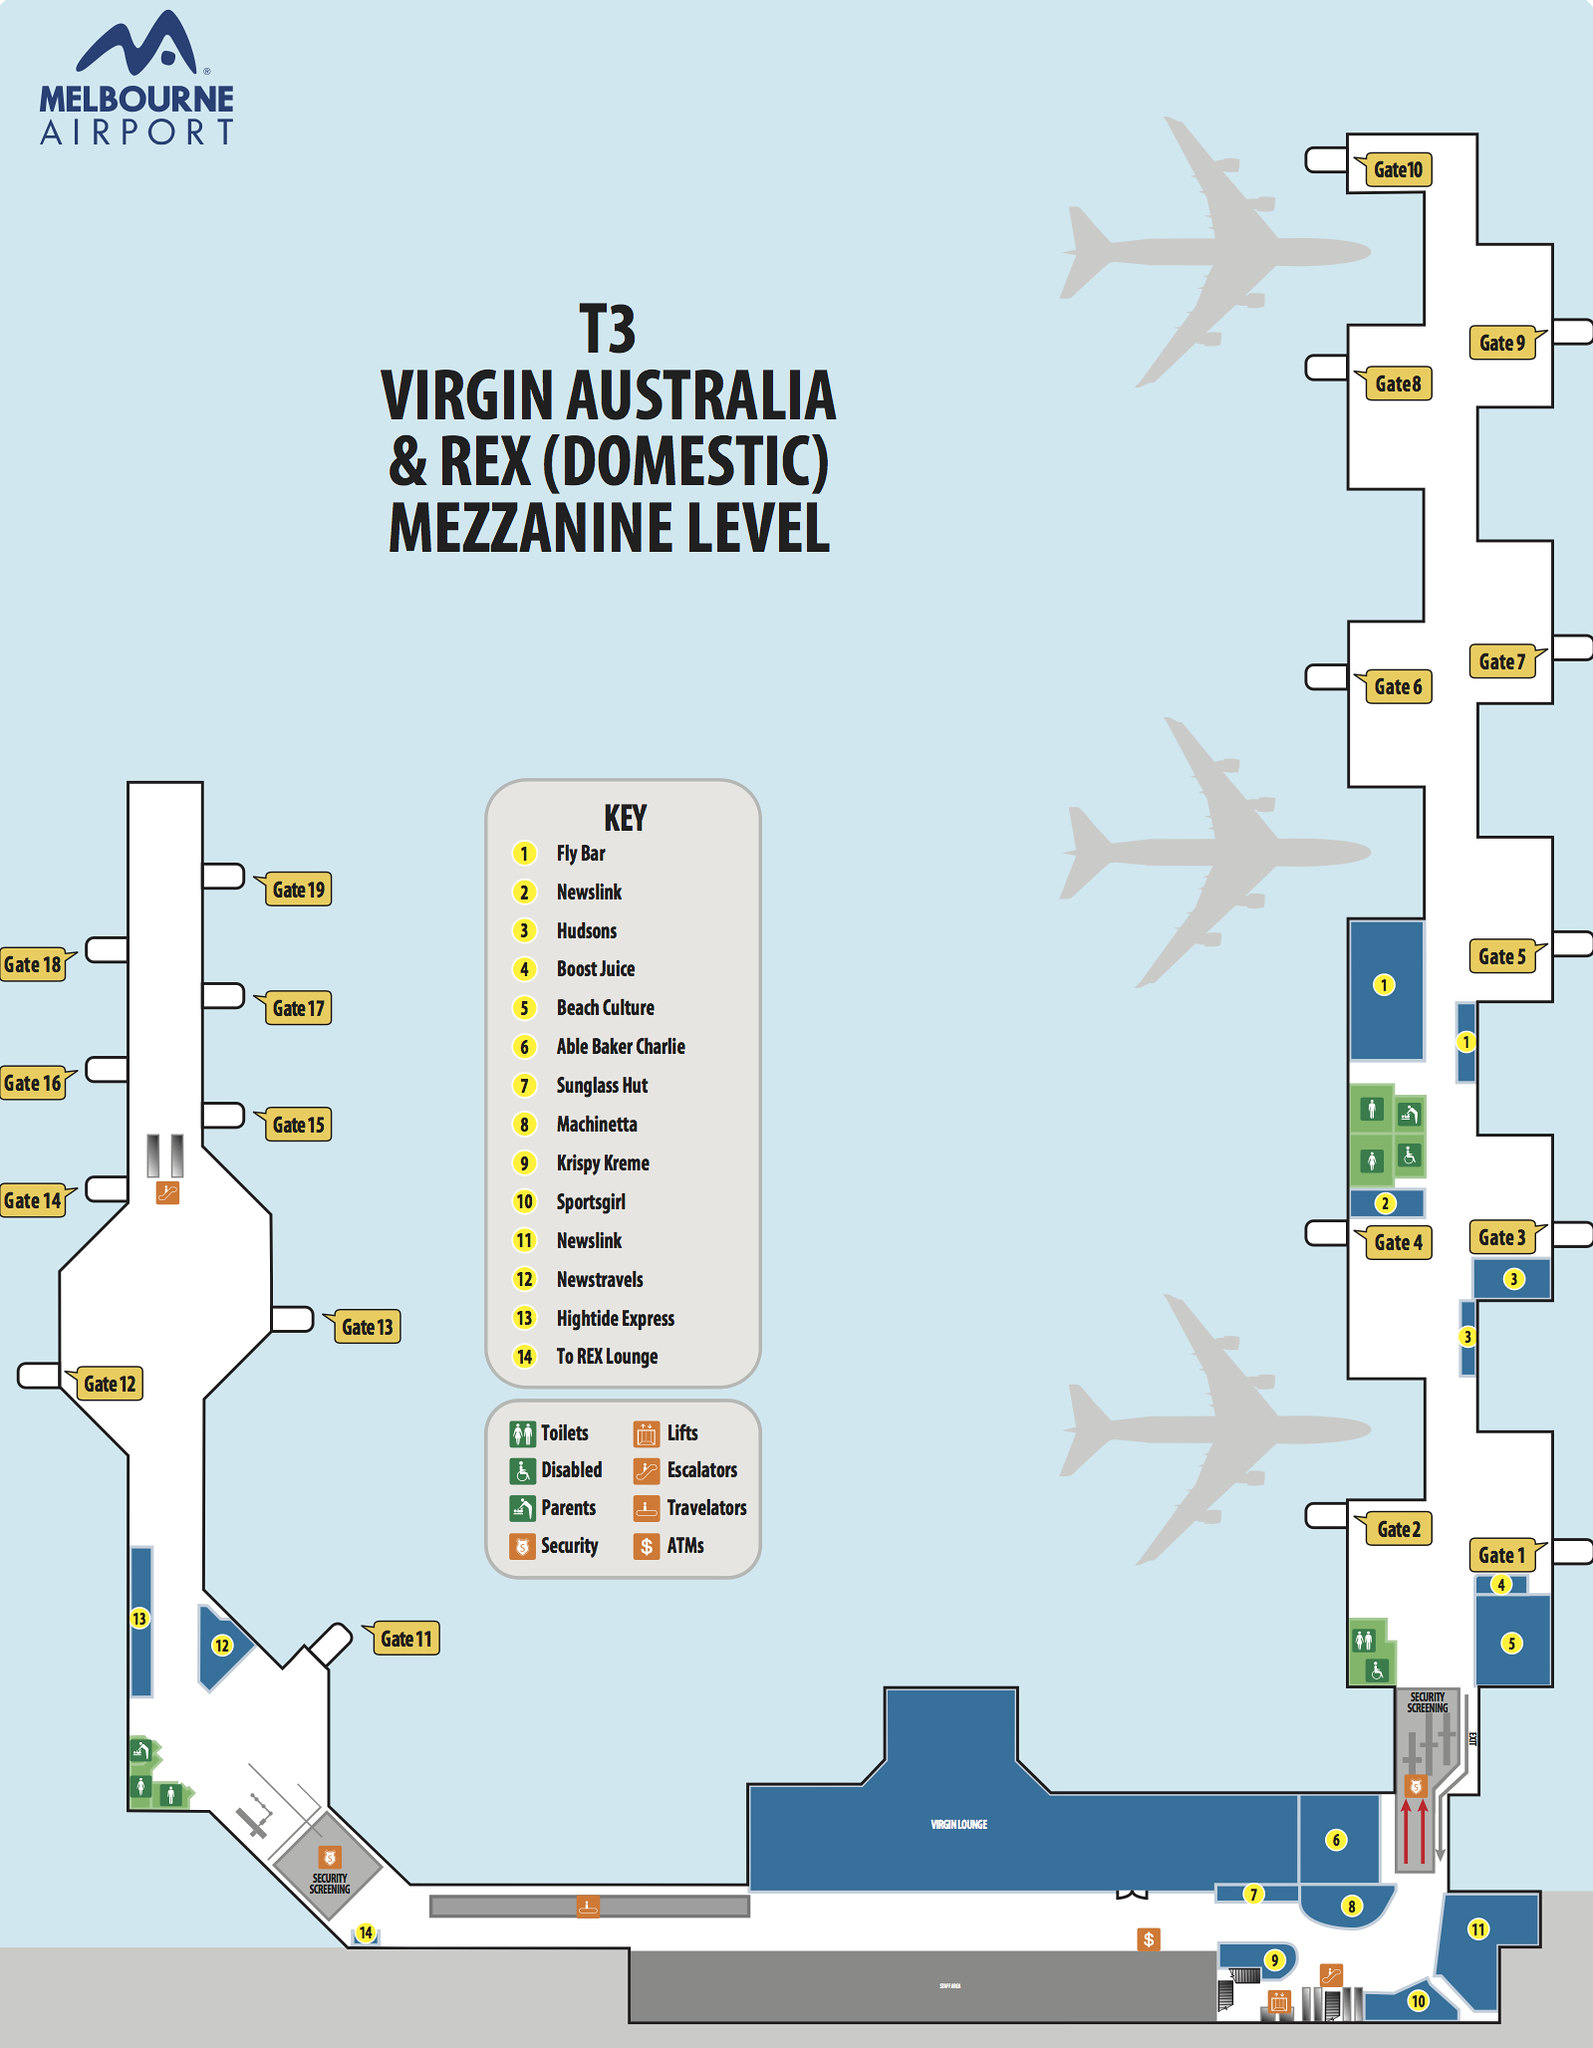 ⑦melbourne-airport-maps--t3-gates-(arrivals-and-depatures)-